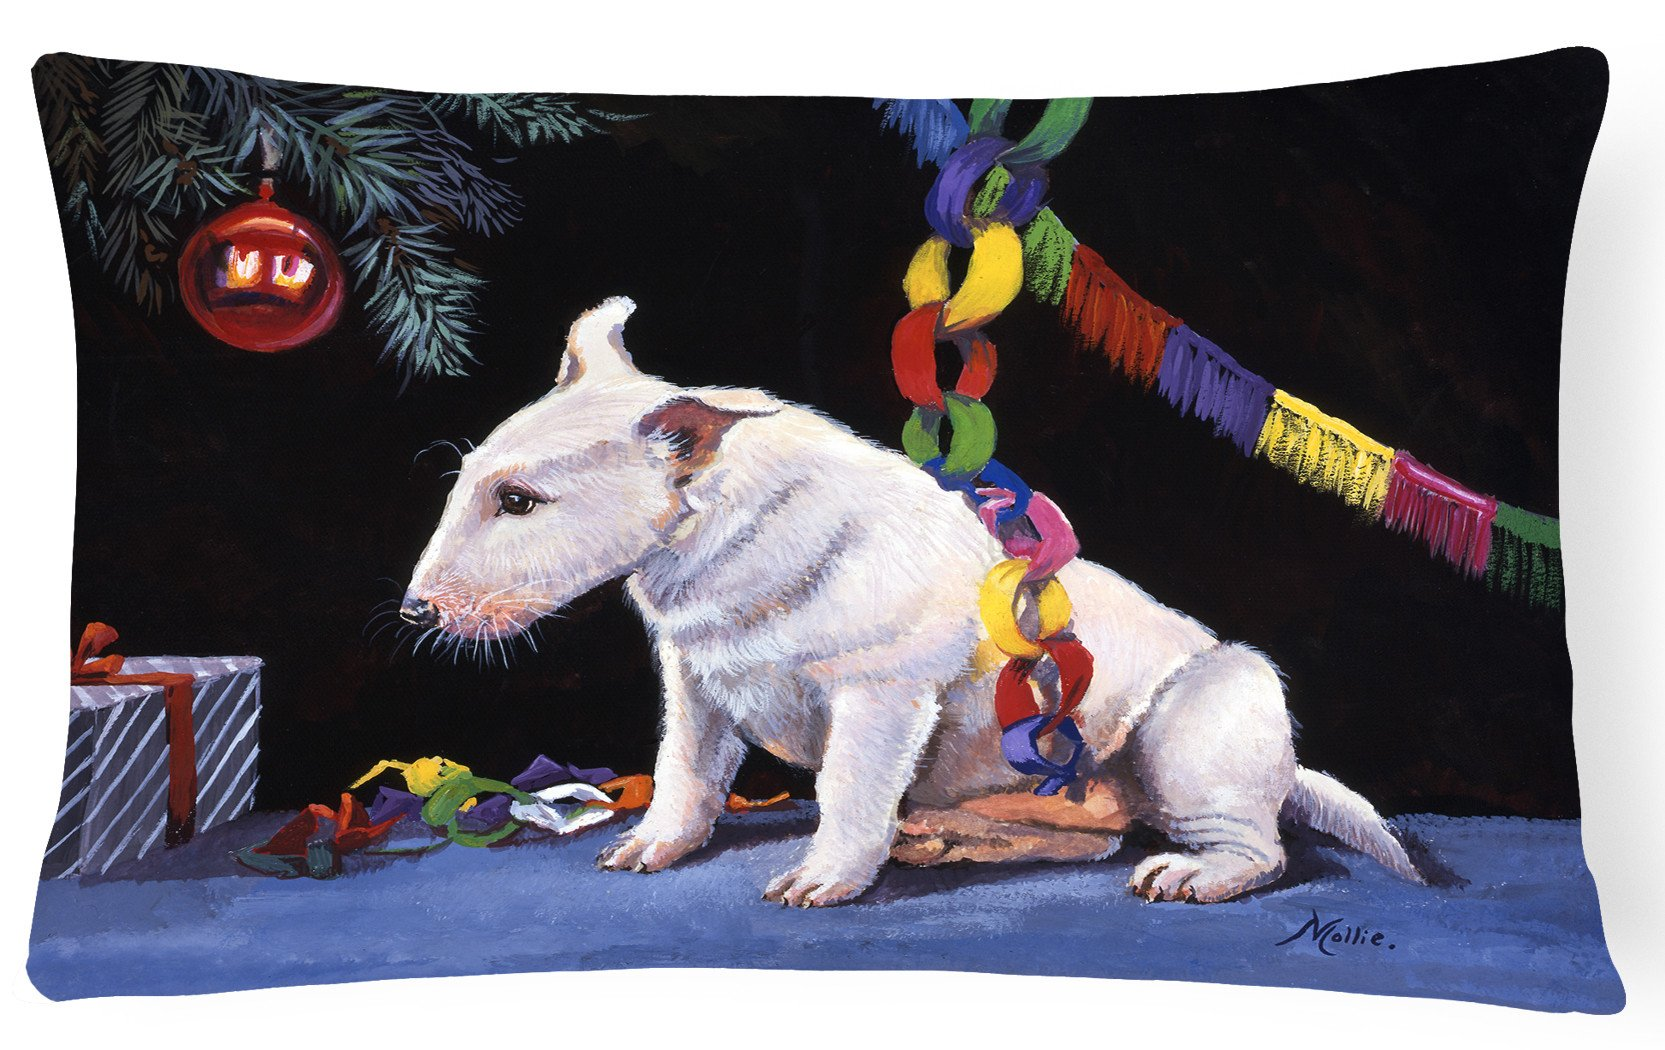 Bull Terrier under the Christmas Tree Fabric Decorative Pillow FMF0012PW1216 by Caroline's Treasures